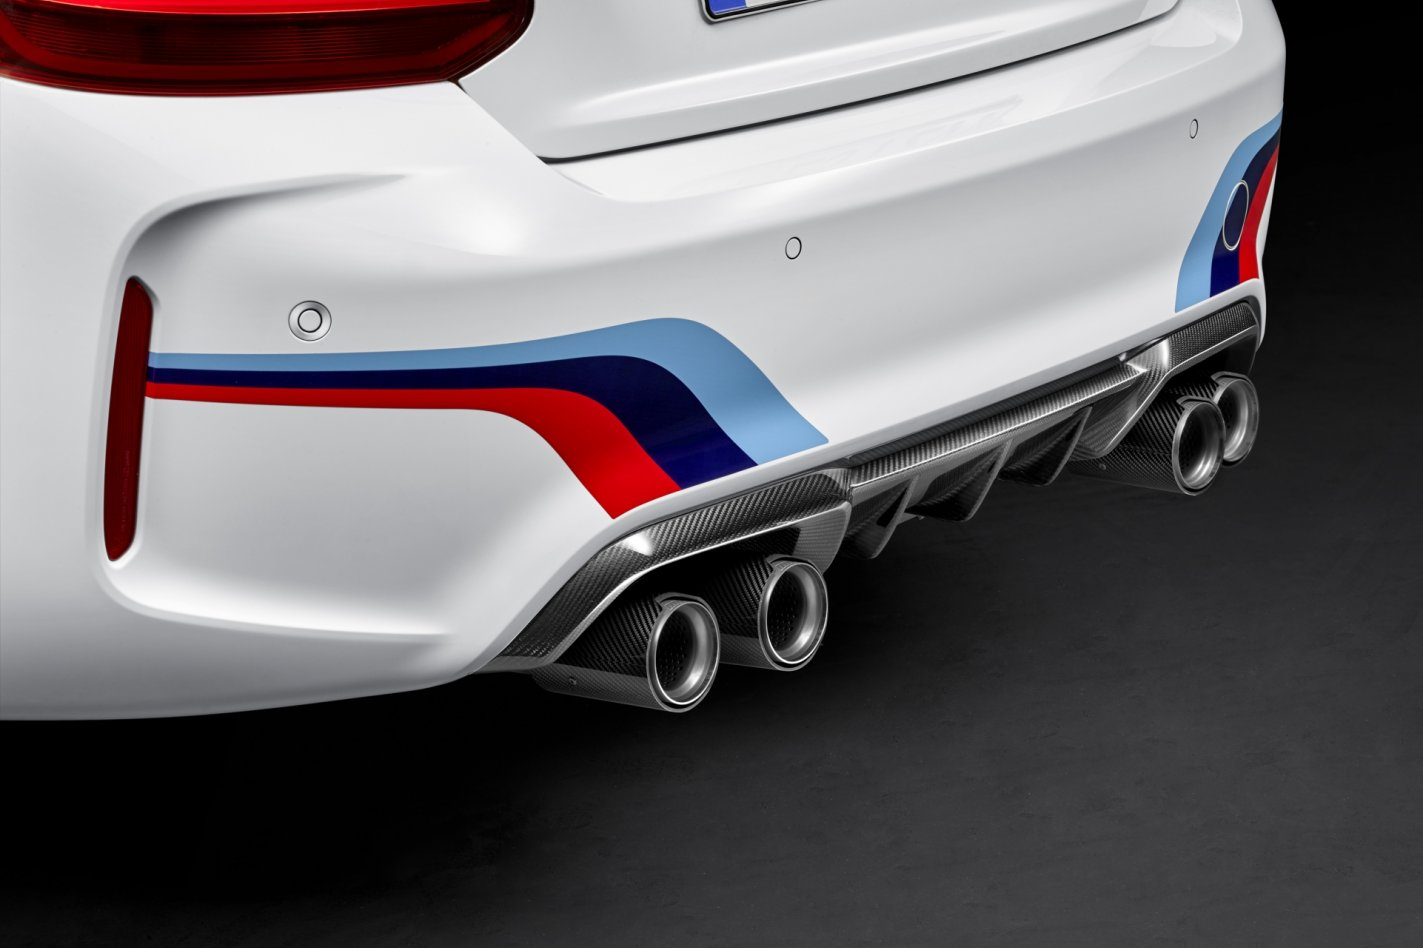 BMW M2 M-Performance parts goodies wit blauw rood 2017 10